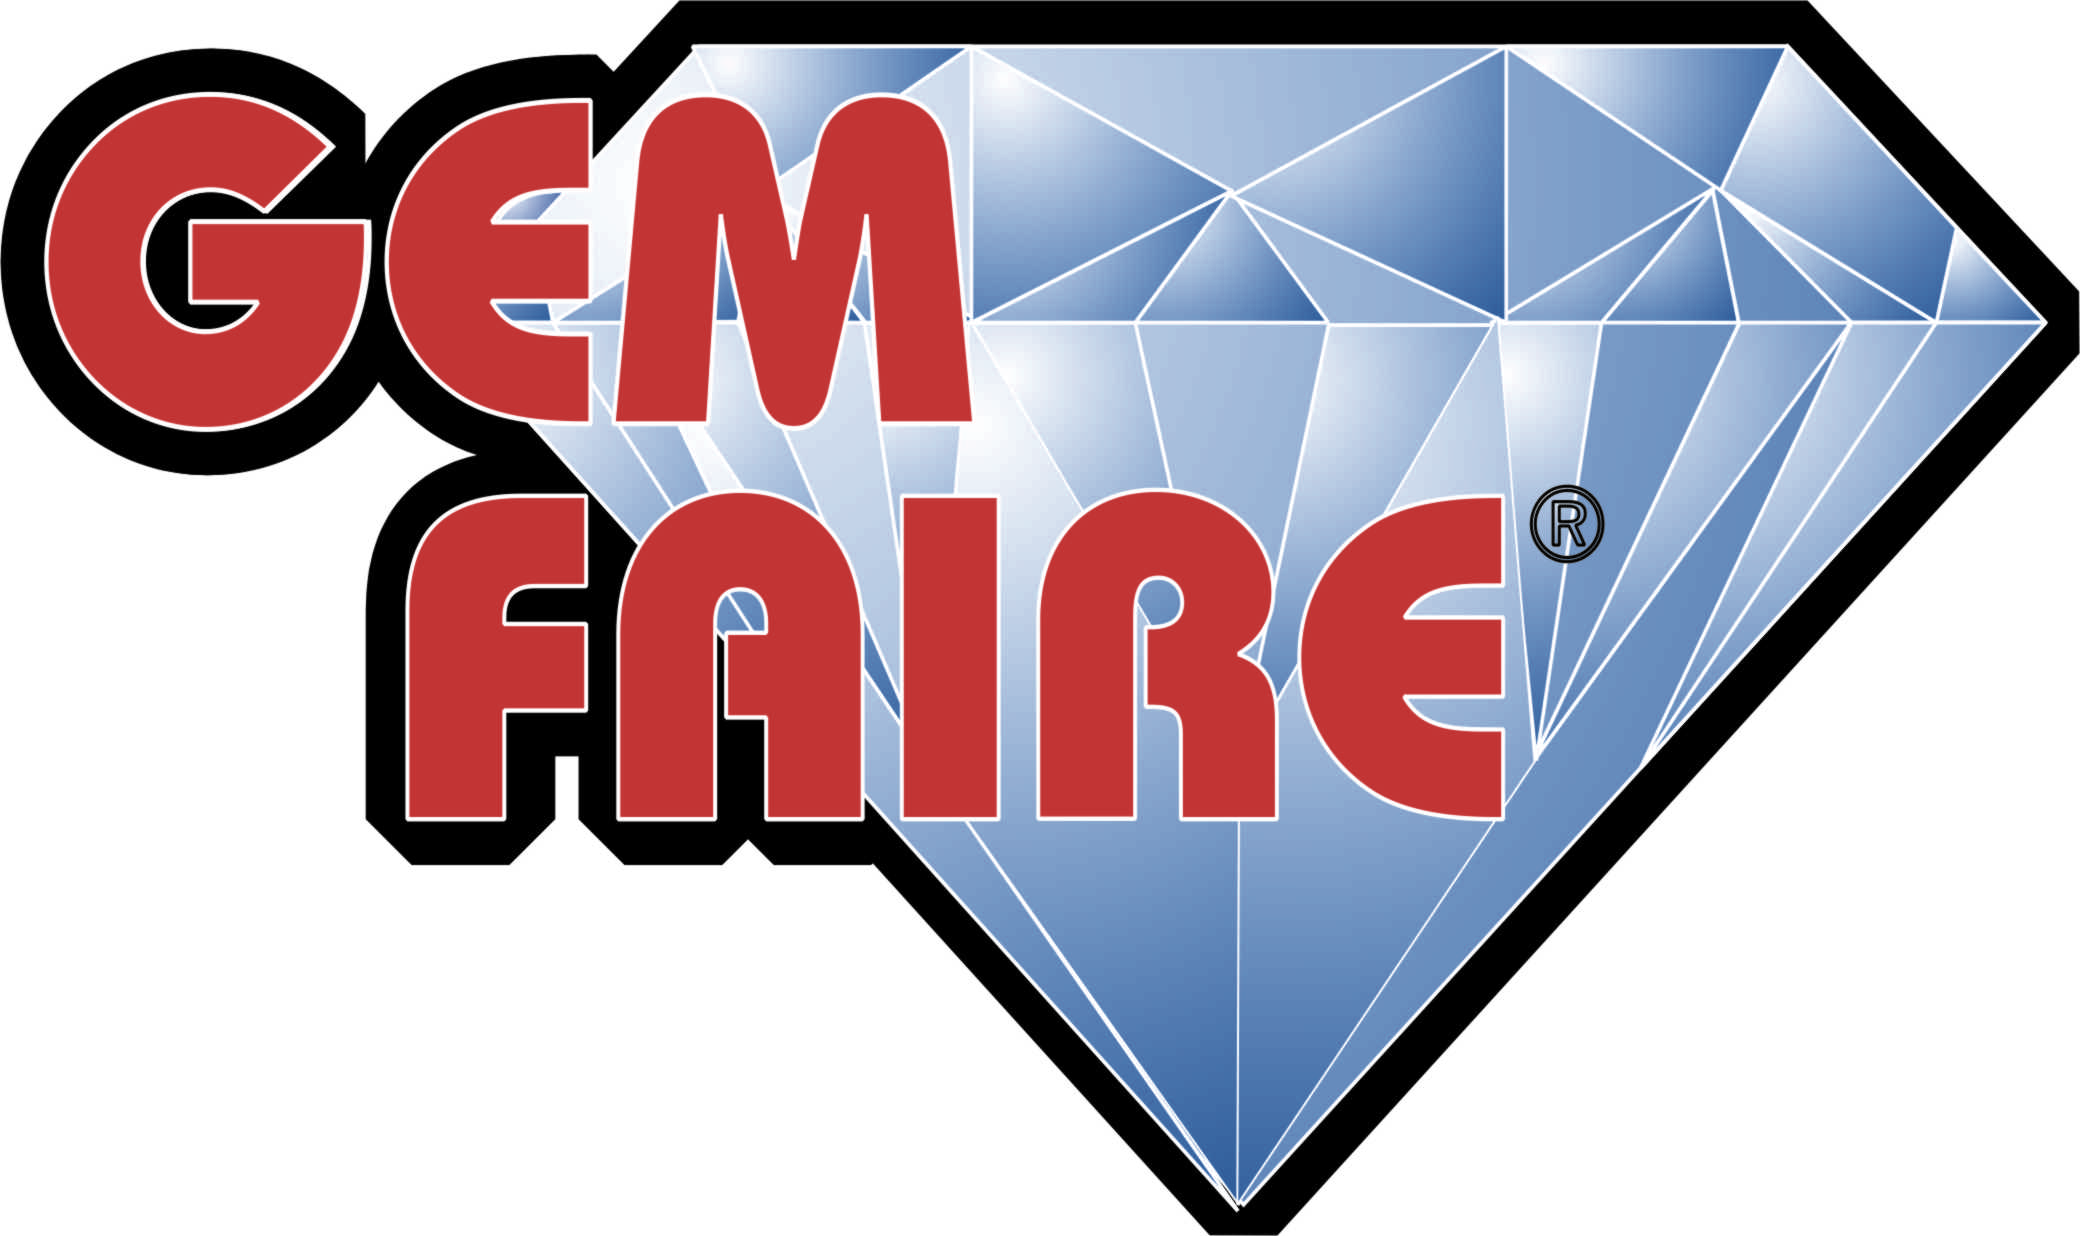 Gem Faire just logo (newsletter website)